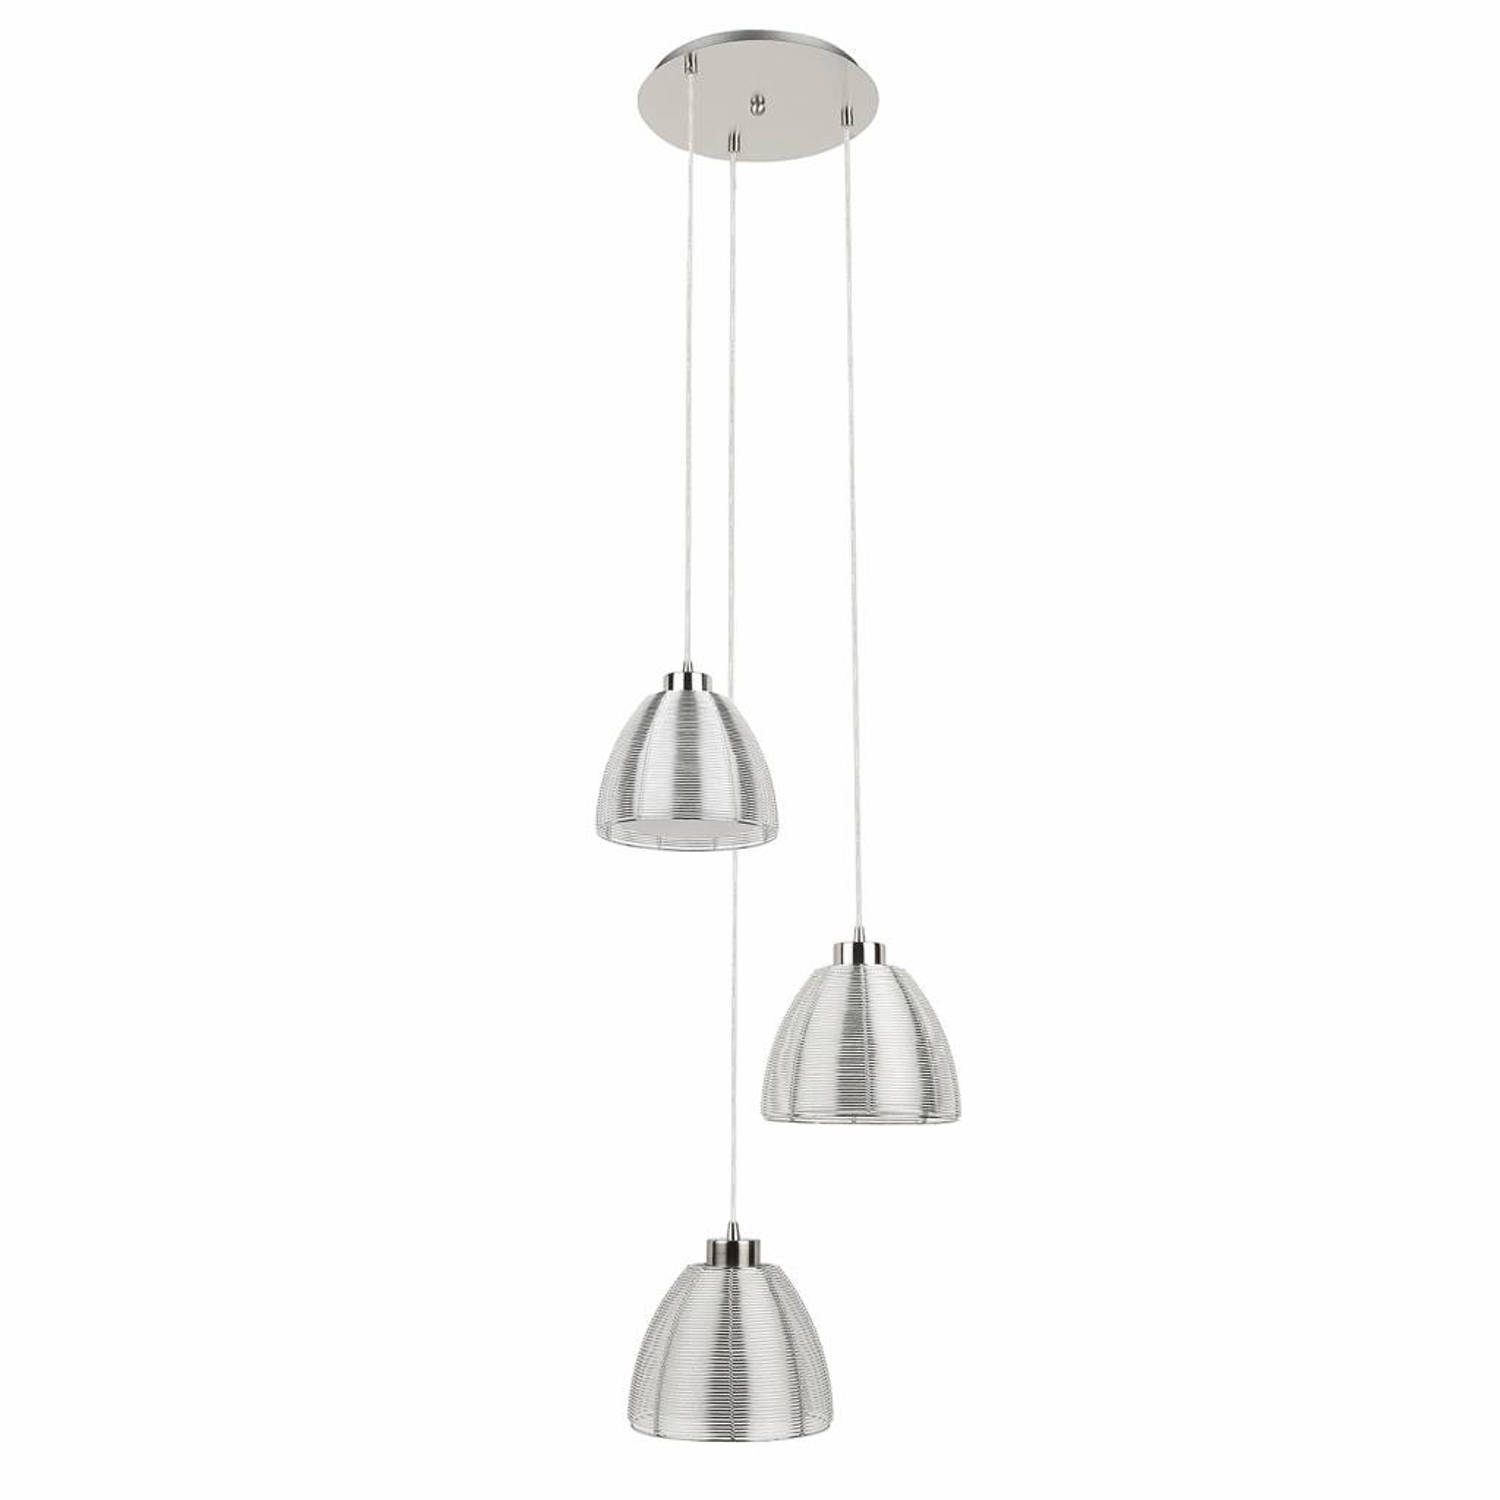 Highlight Hanglamp Whires Small Mat chroom 3 lichts rond